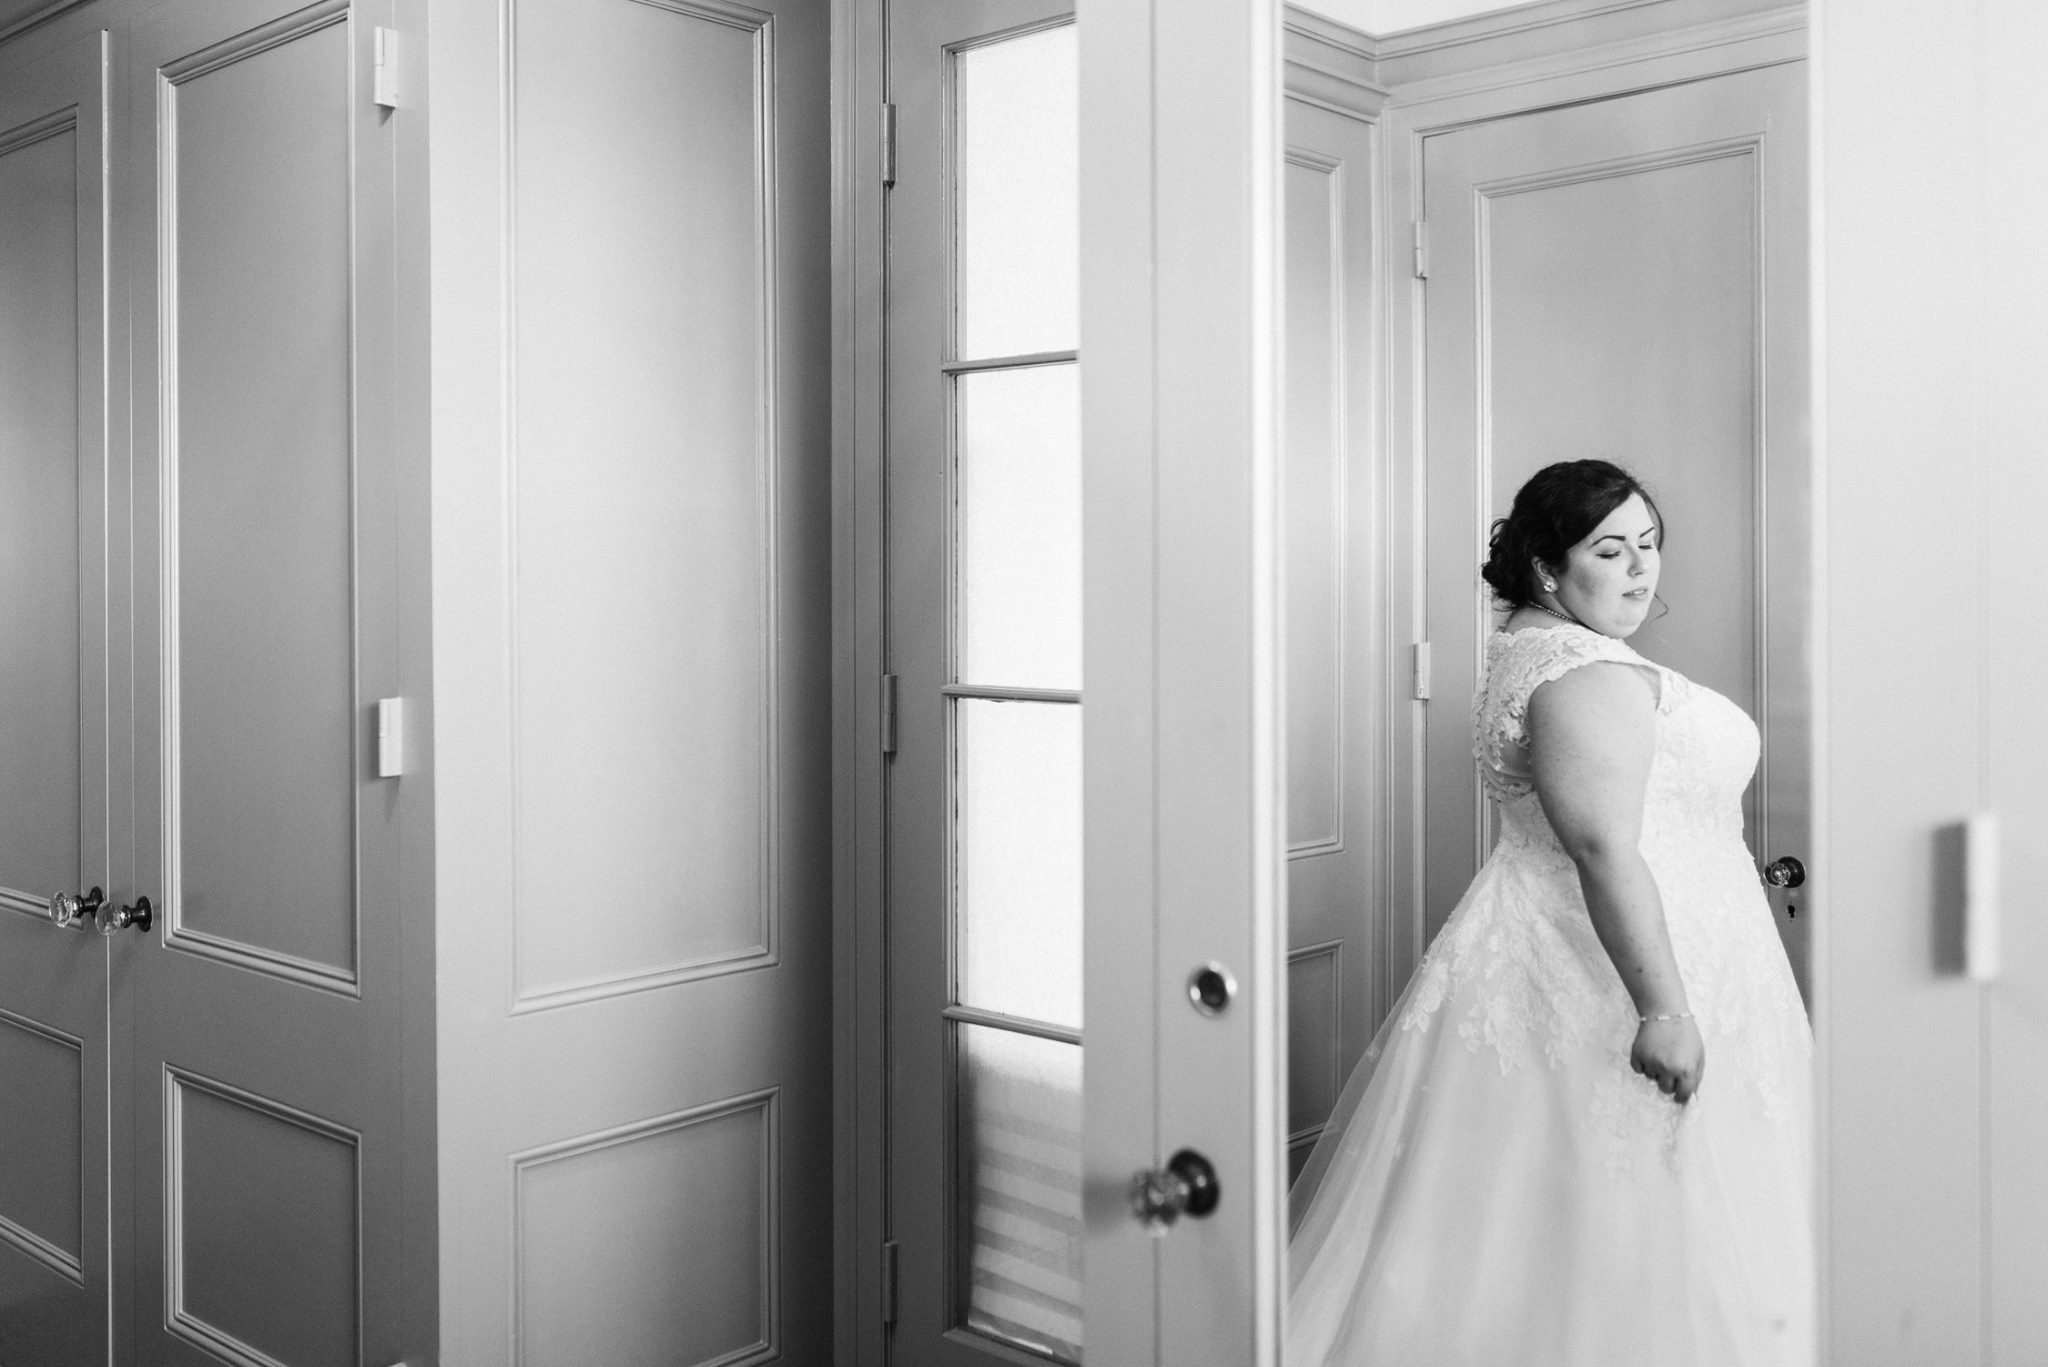 """Caitlin + Marcus - """"Cheyenne did my wedding photos, and I could just gush over how amazing she was! She made me feel incredibly comfortable the entire time we did the photos, made me feel like I was heard, and most of all, she helped me feel so beautiful.She showed up early to our venue and took some phenomenal photos! My husband and I are so happy with our photos, and we would choose Cheyenne again if we had to do it all over. I plan on using her for my photography needs from now on."""" Married March 2018"""